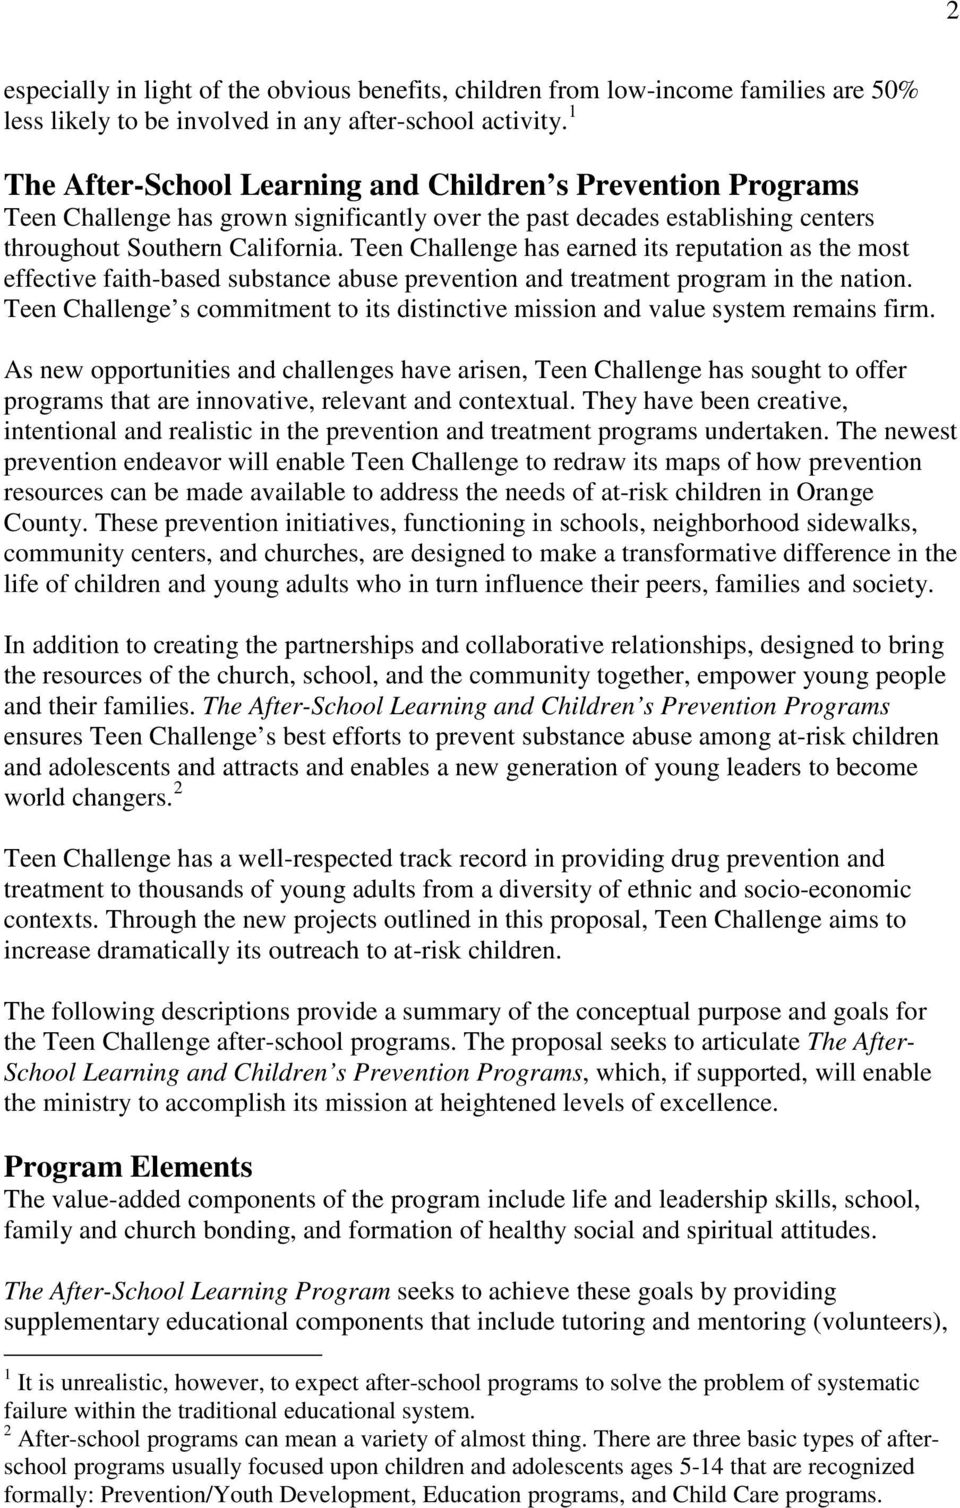 Teen Challenge has earned its reputation as the most effective faith-based substance abuse prevention and treatment program in the nation.